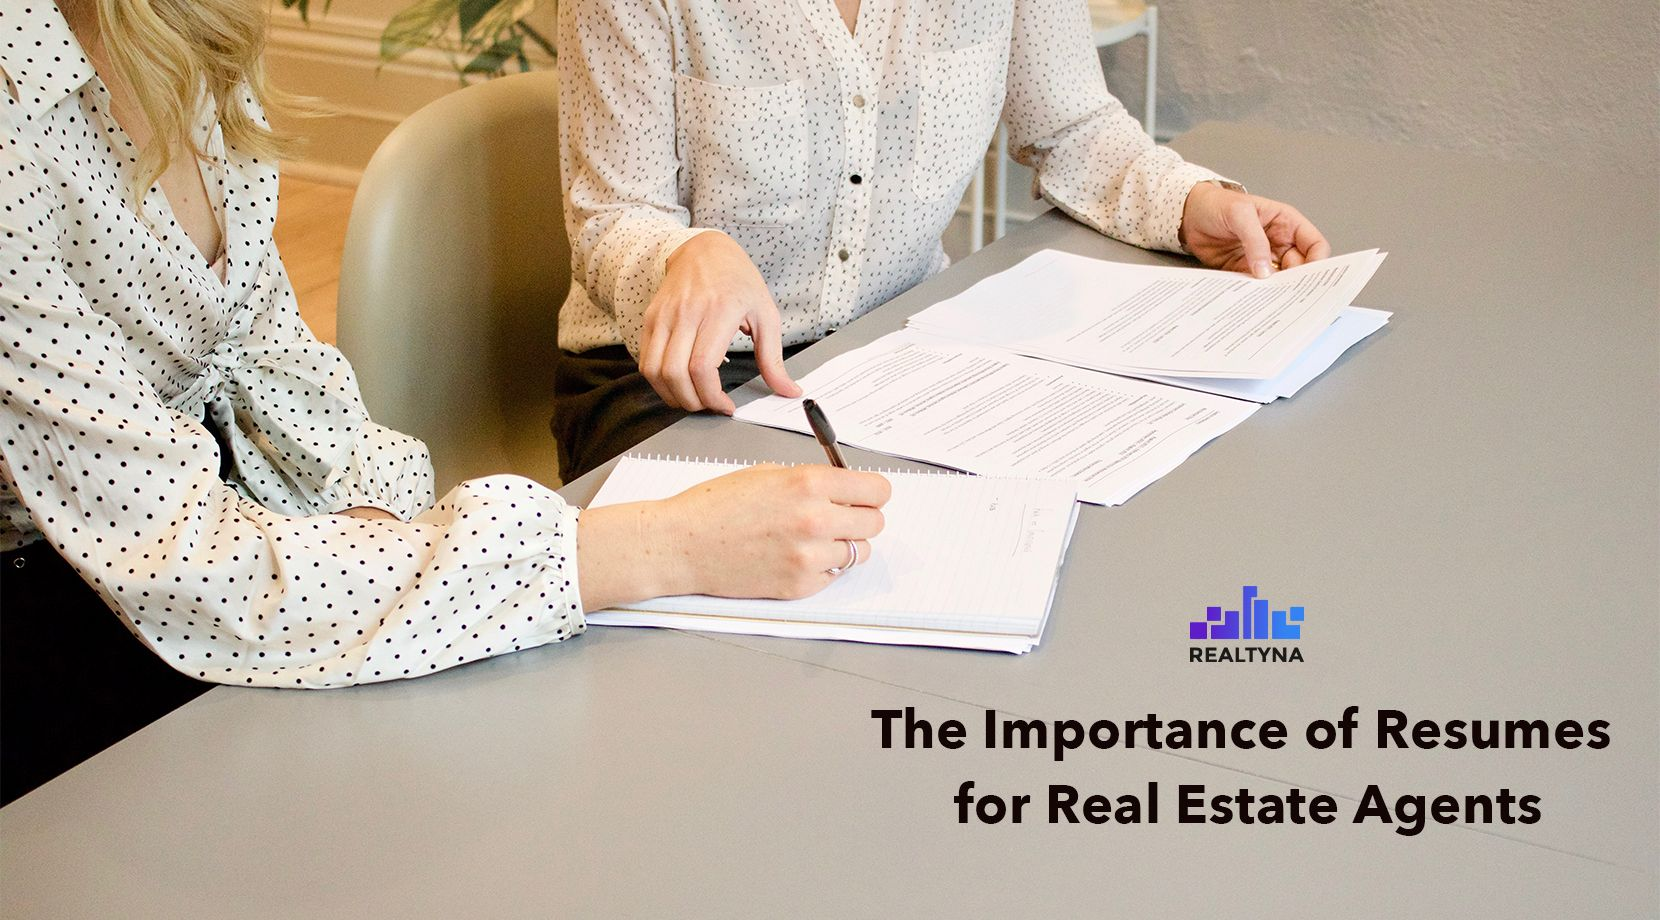 The Importance of Resumes for Real Estate Agents